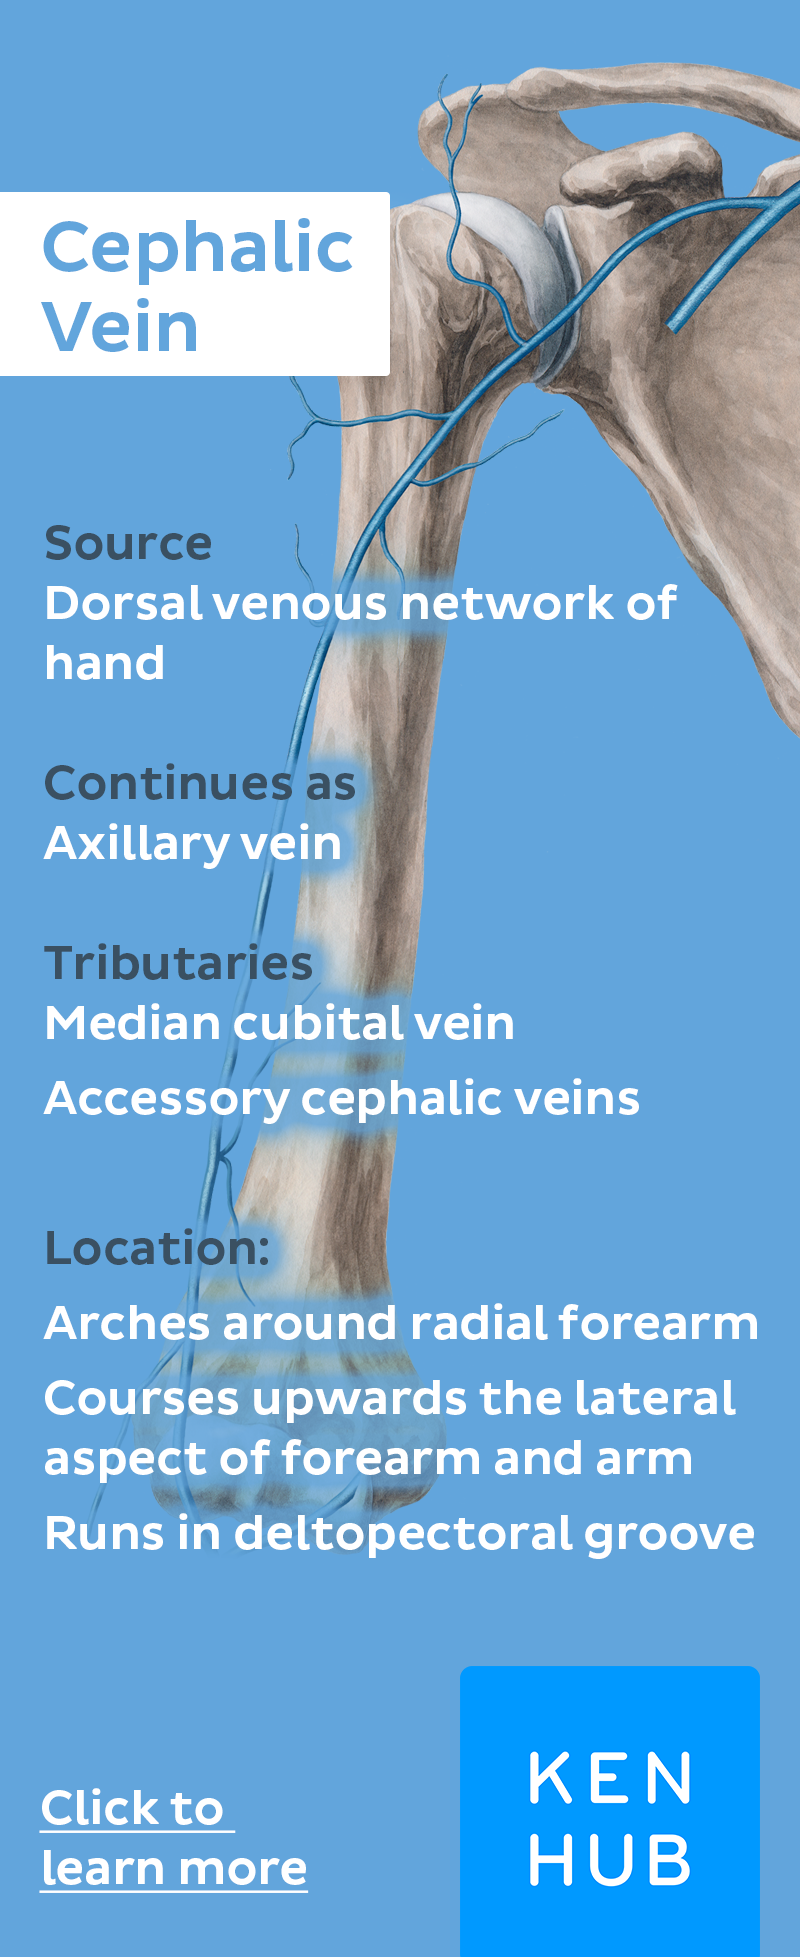 Cephalic vein | Med school | Pinterest | Anatomy, Learning and Medical